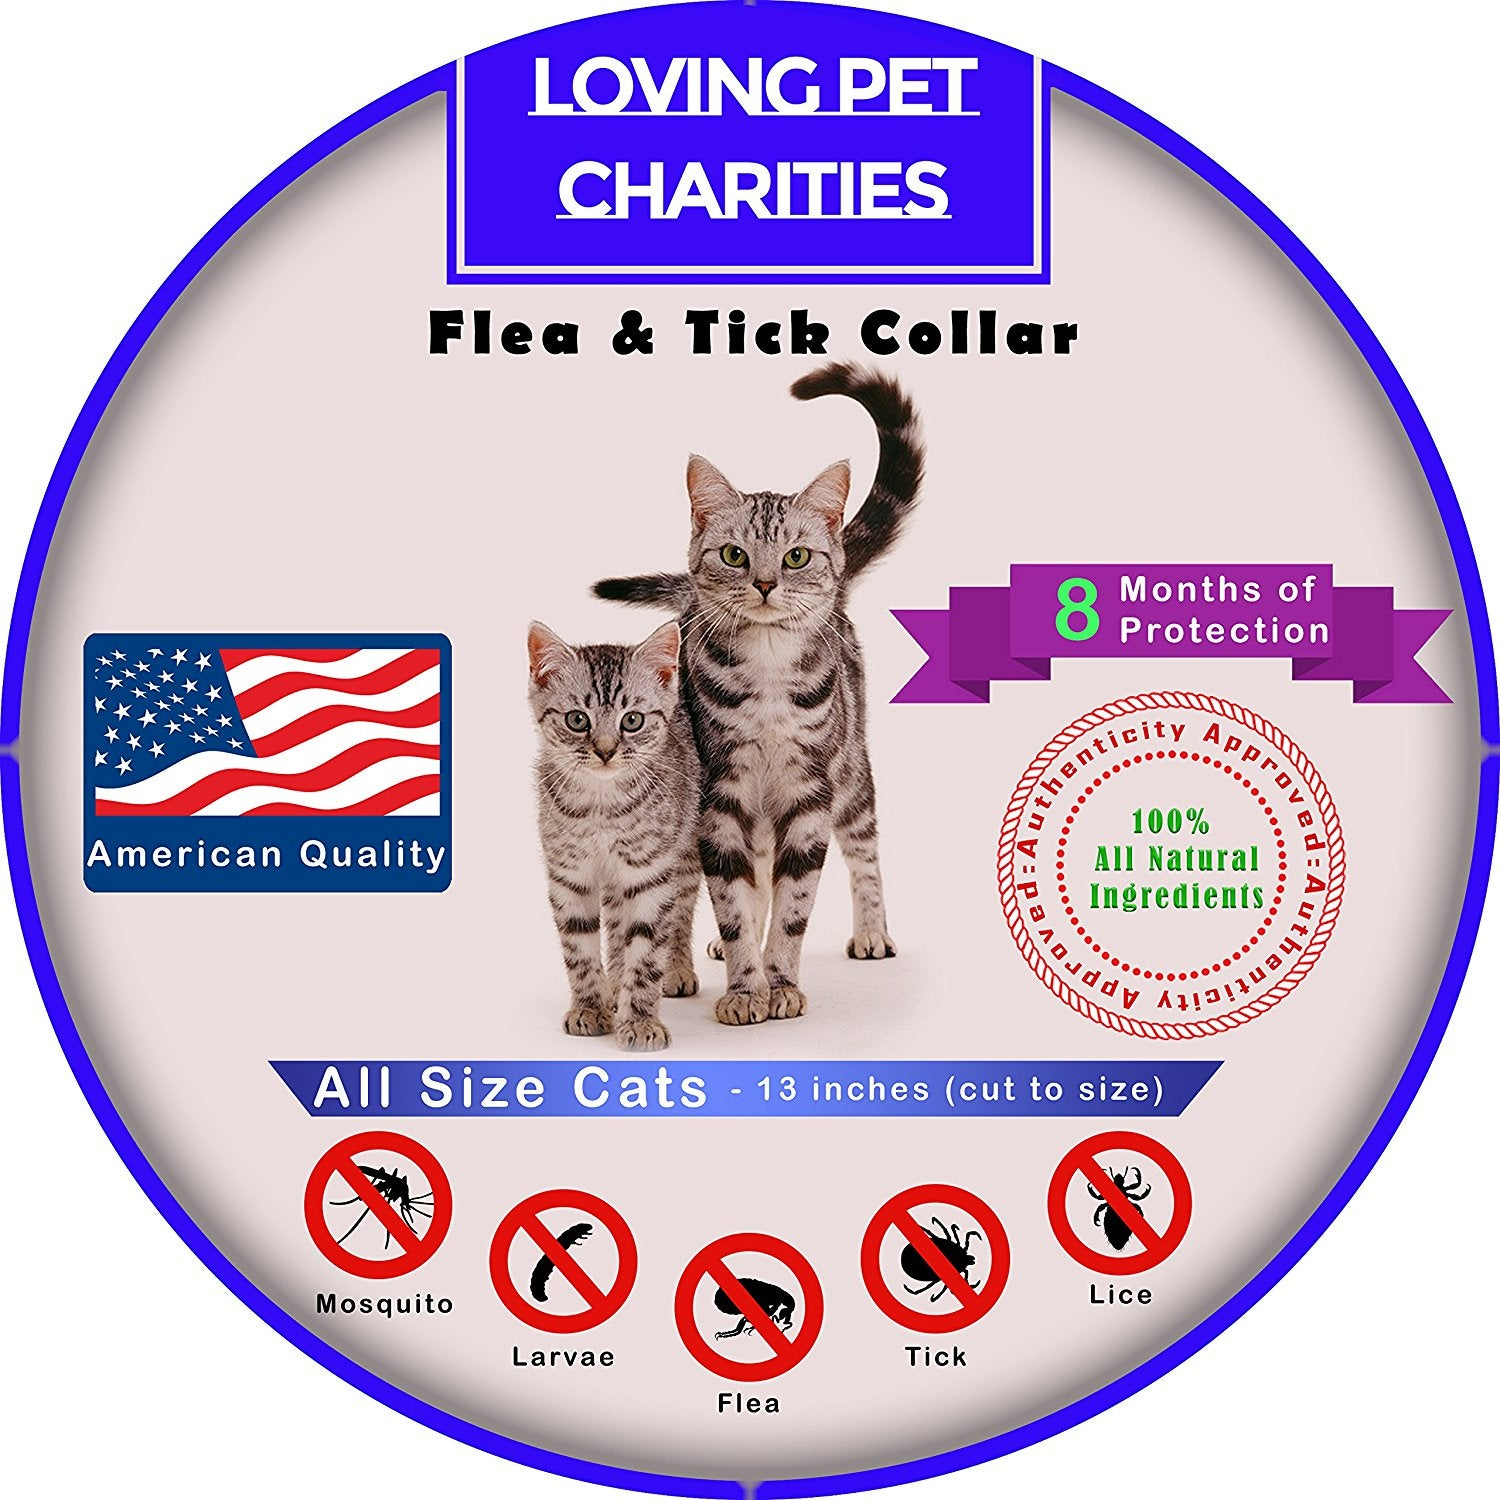 Value Pack! 2 All Natural Flea & Tick Collar for Cats